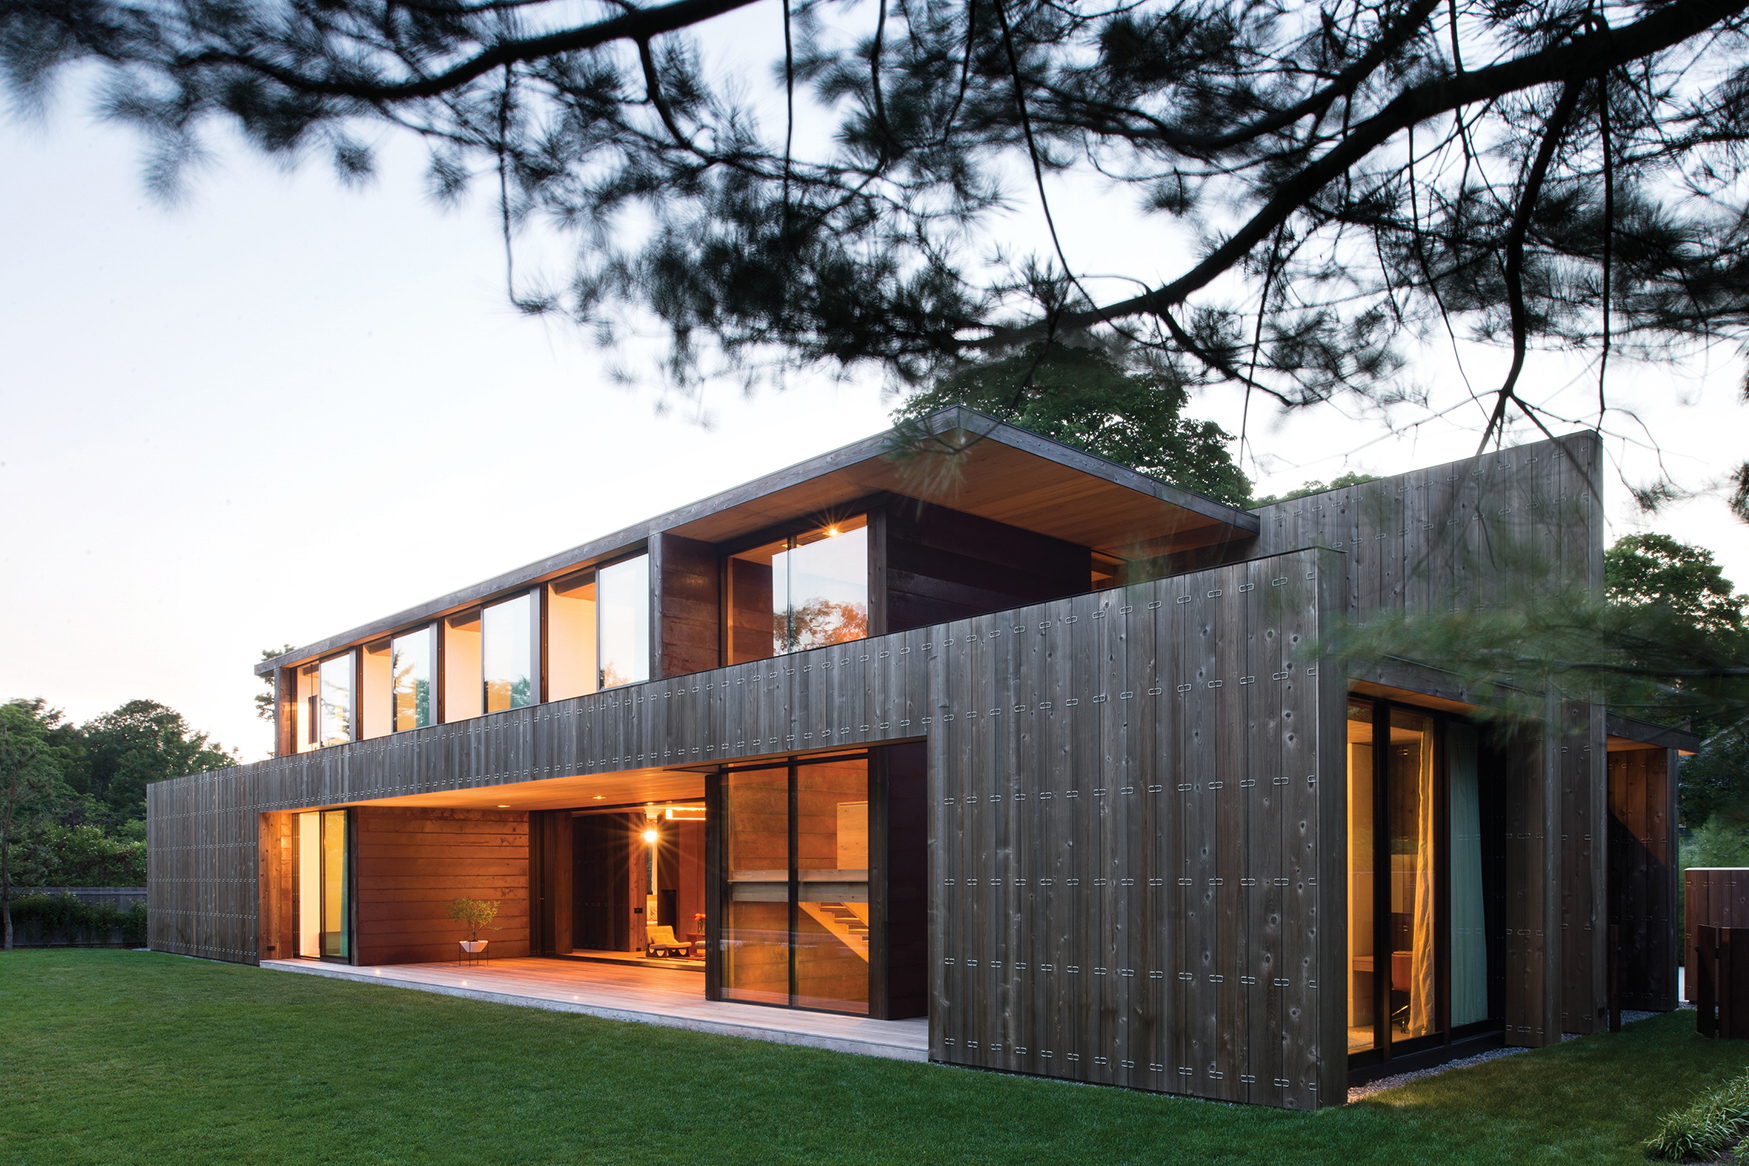 Architecture Design 2015 2015 residential architect design awards | residential architect